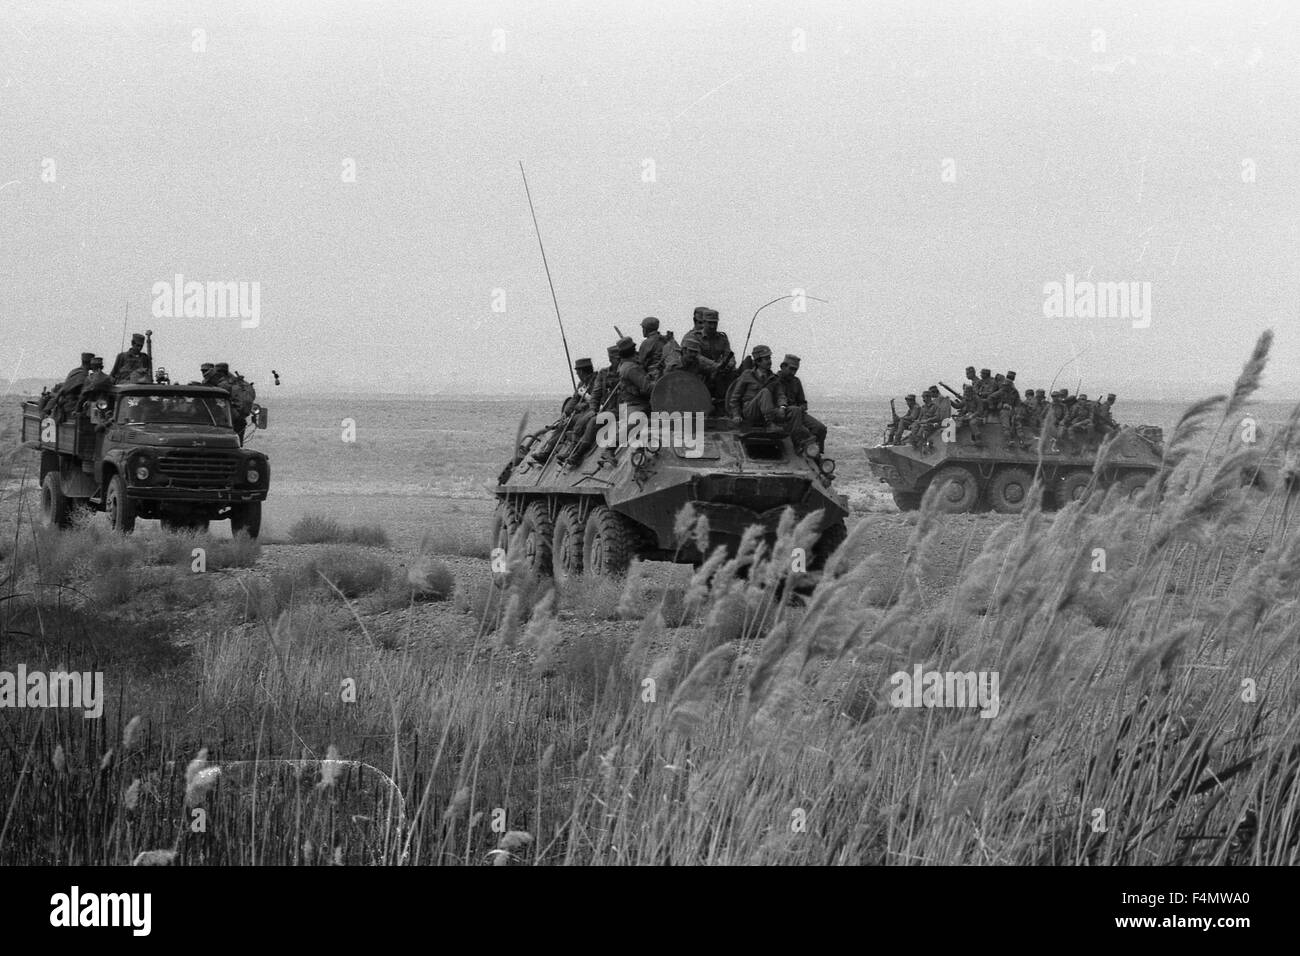 Soviet Afghanistan war - Page 6 Afghanistan-the-soviet-military-technics-on-road-to-kandahar-F4MWA0